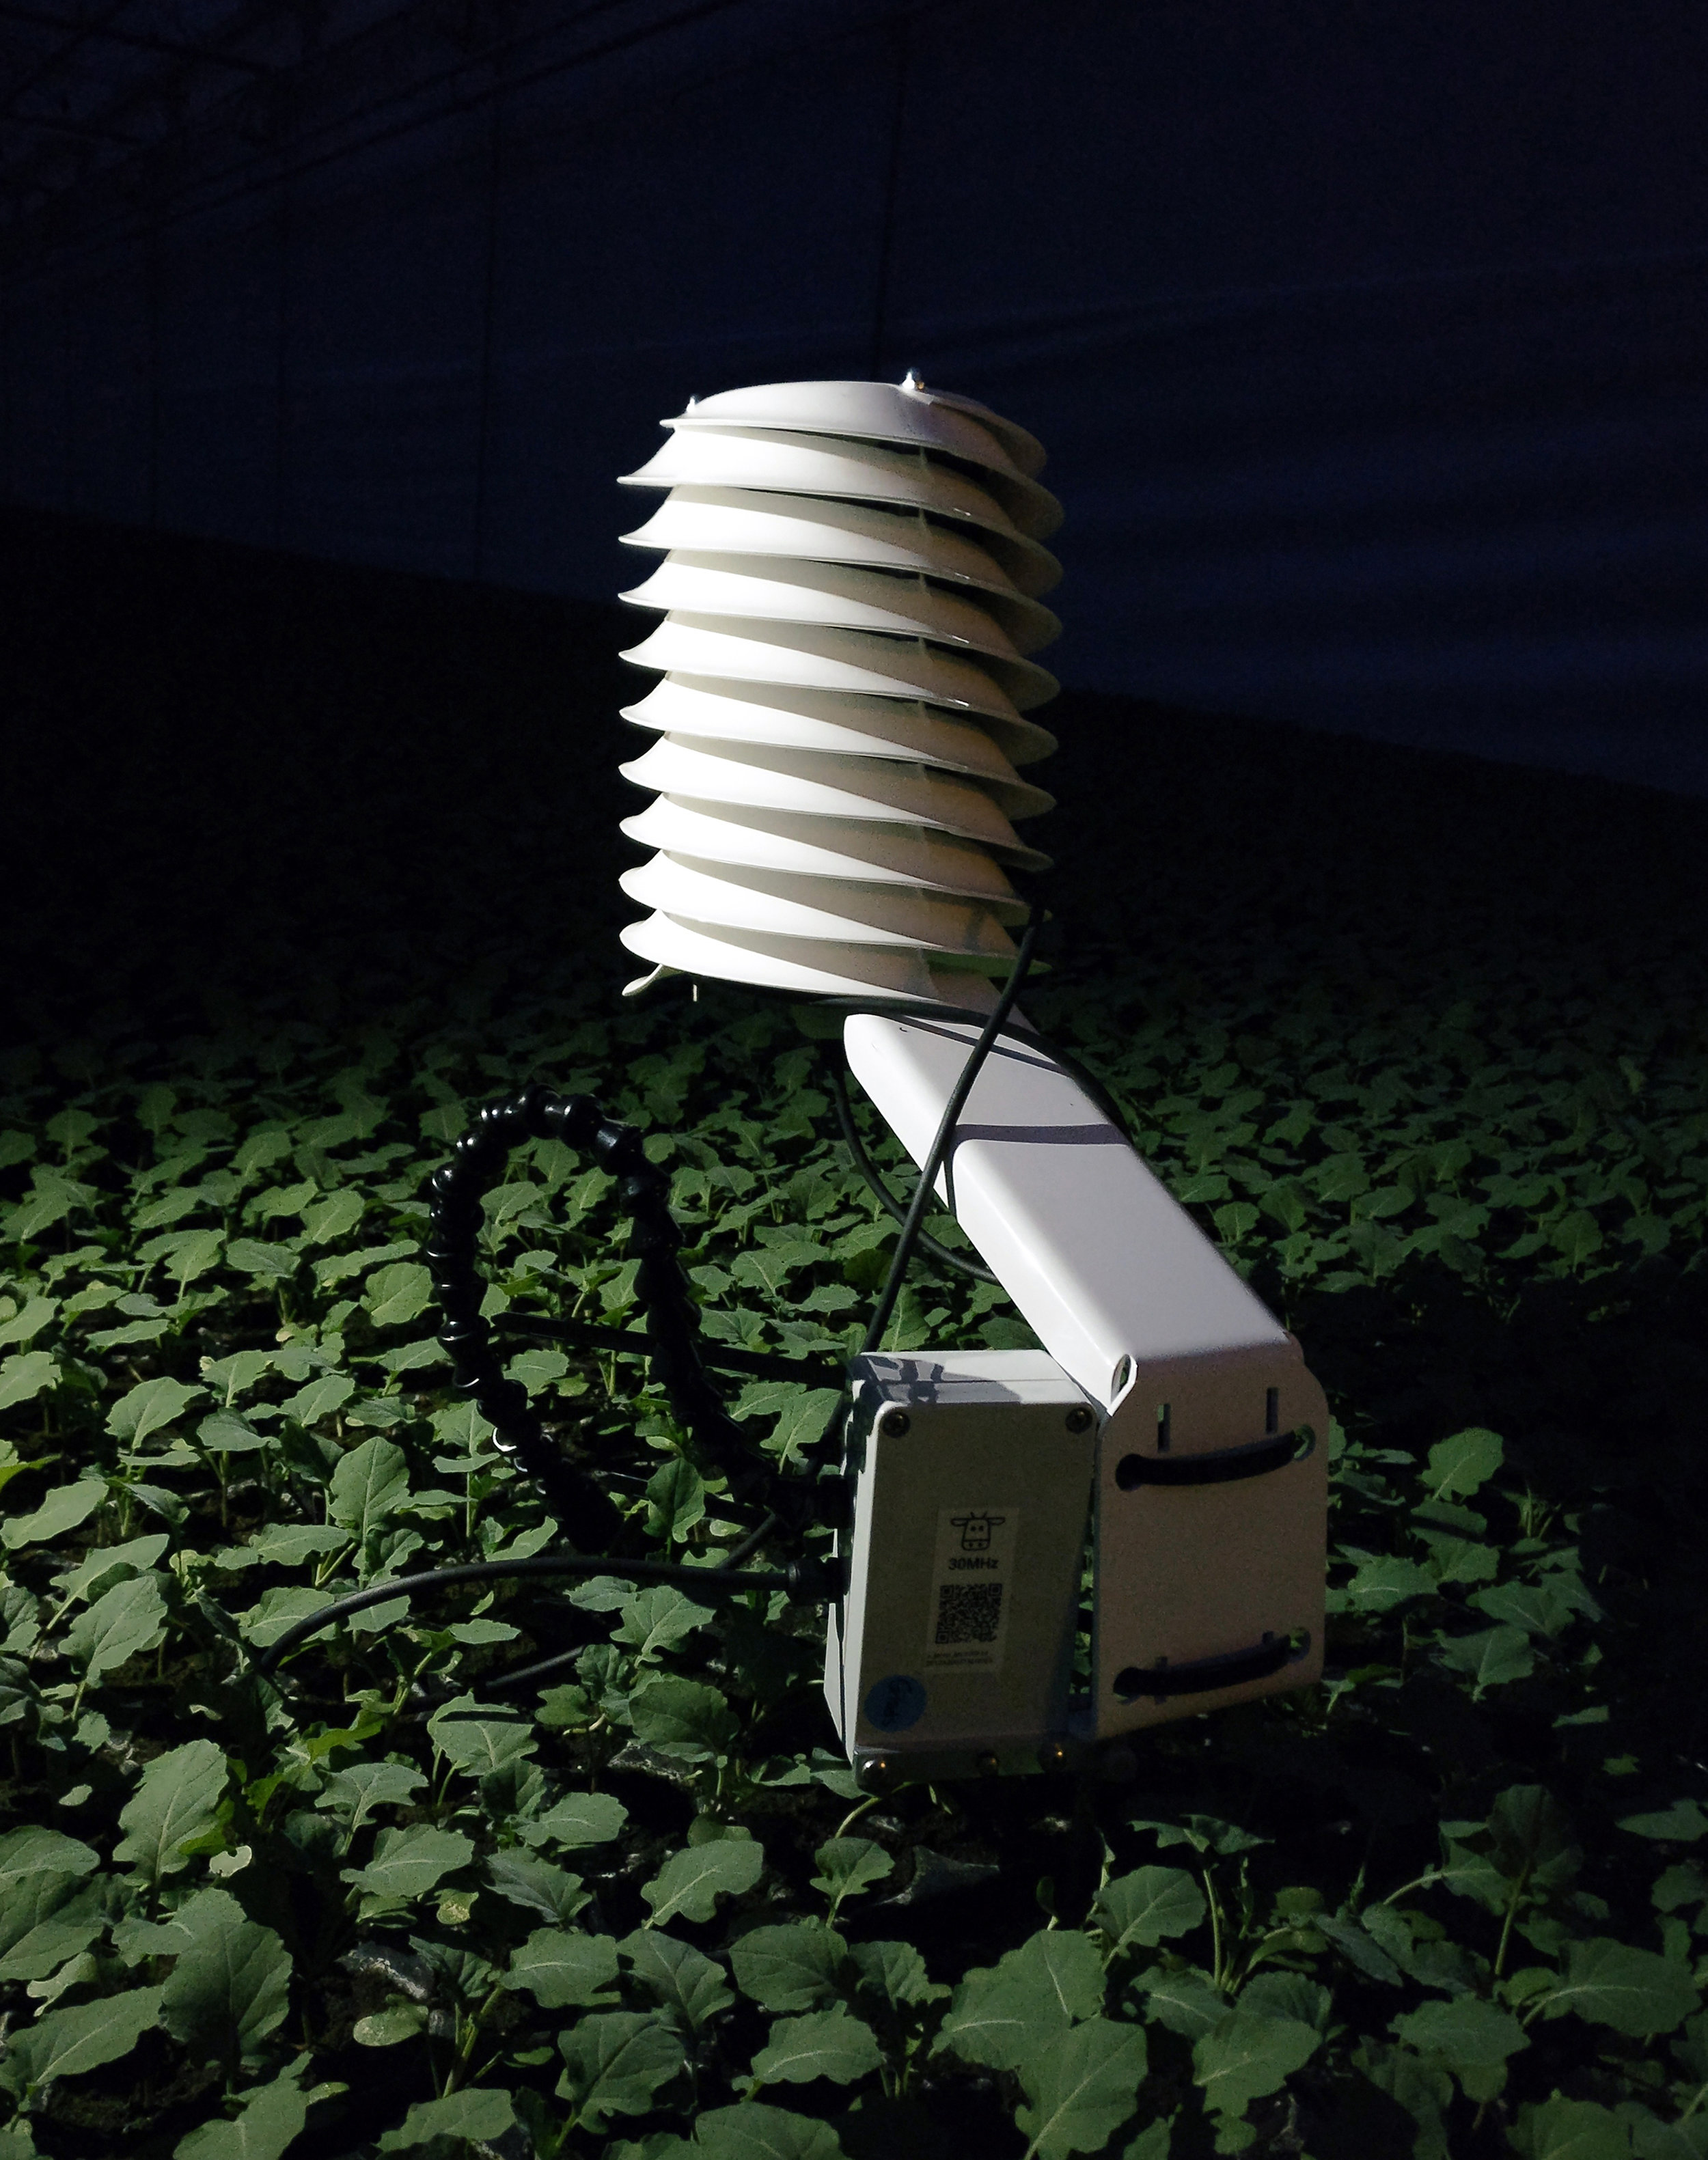 MeteoSHield Professional in testing as part of 30MHz HQ Precision Agro sensor solution